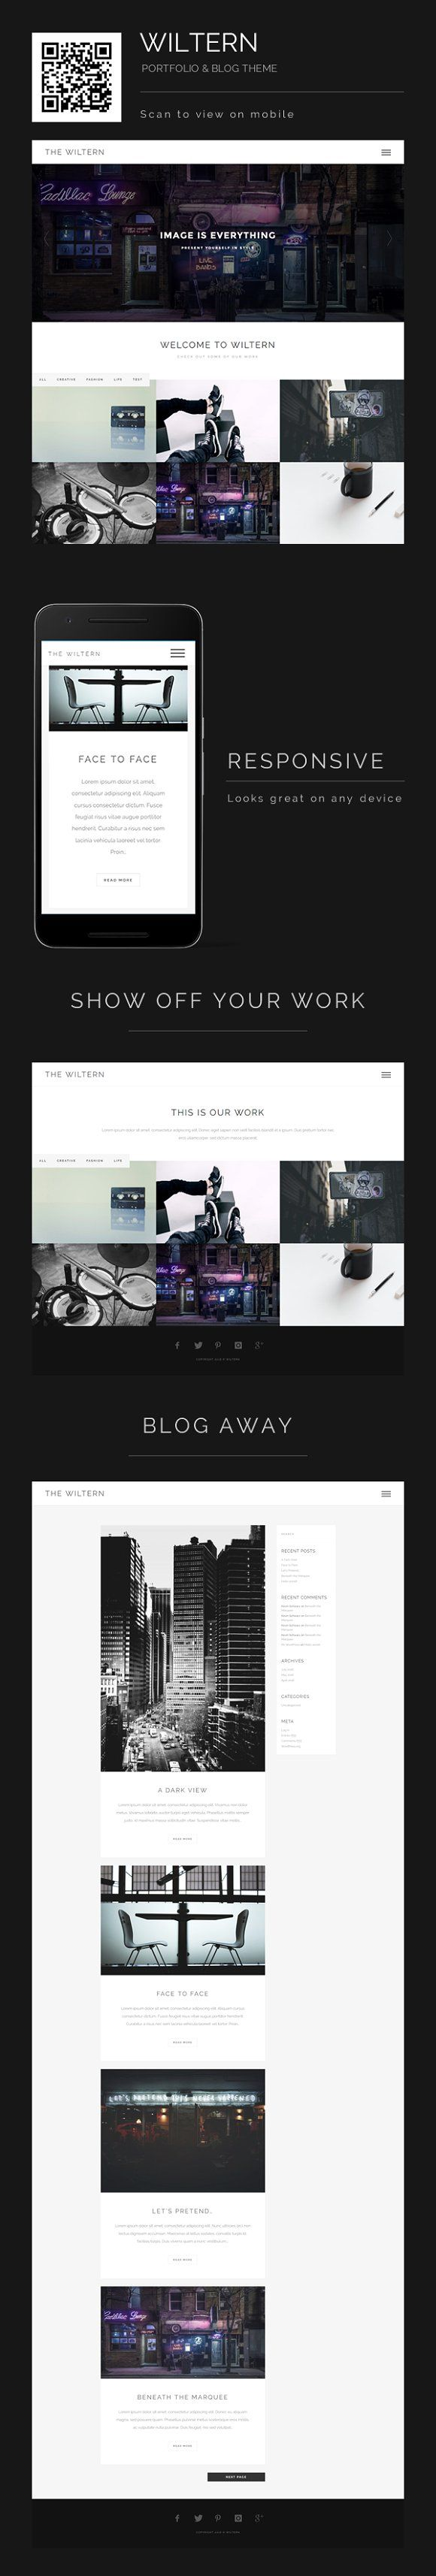 Wiltern - WordPress Portfolio & Blog by KS Designing on ...